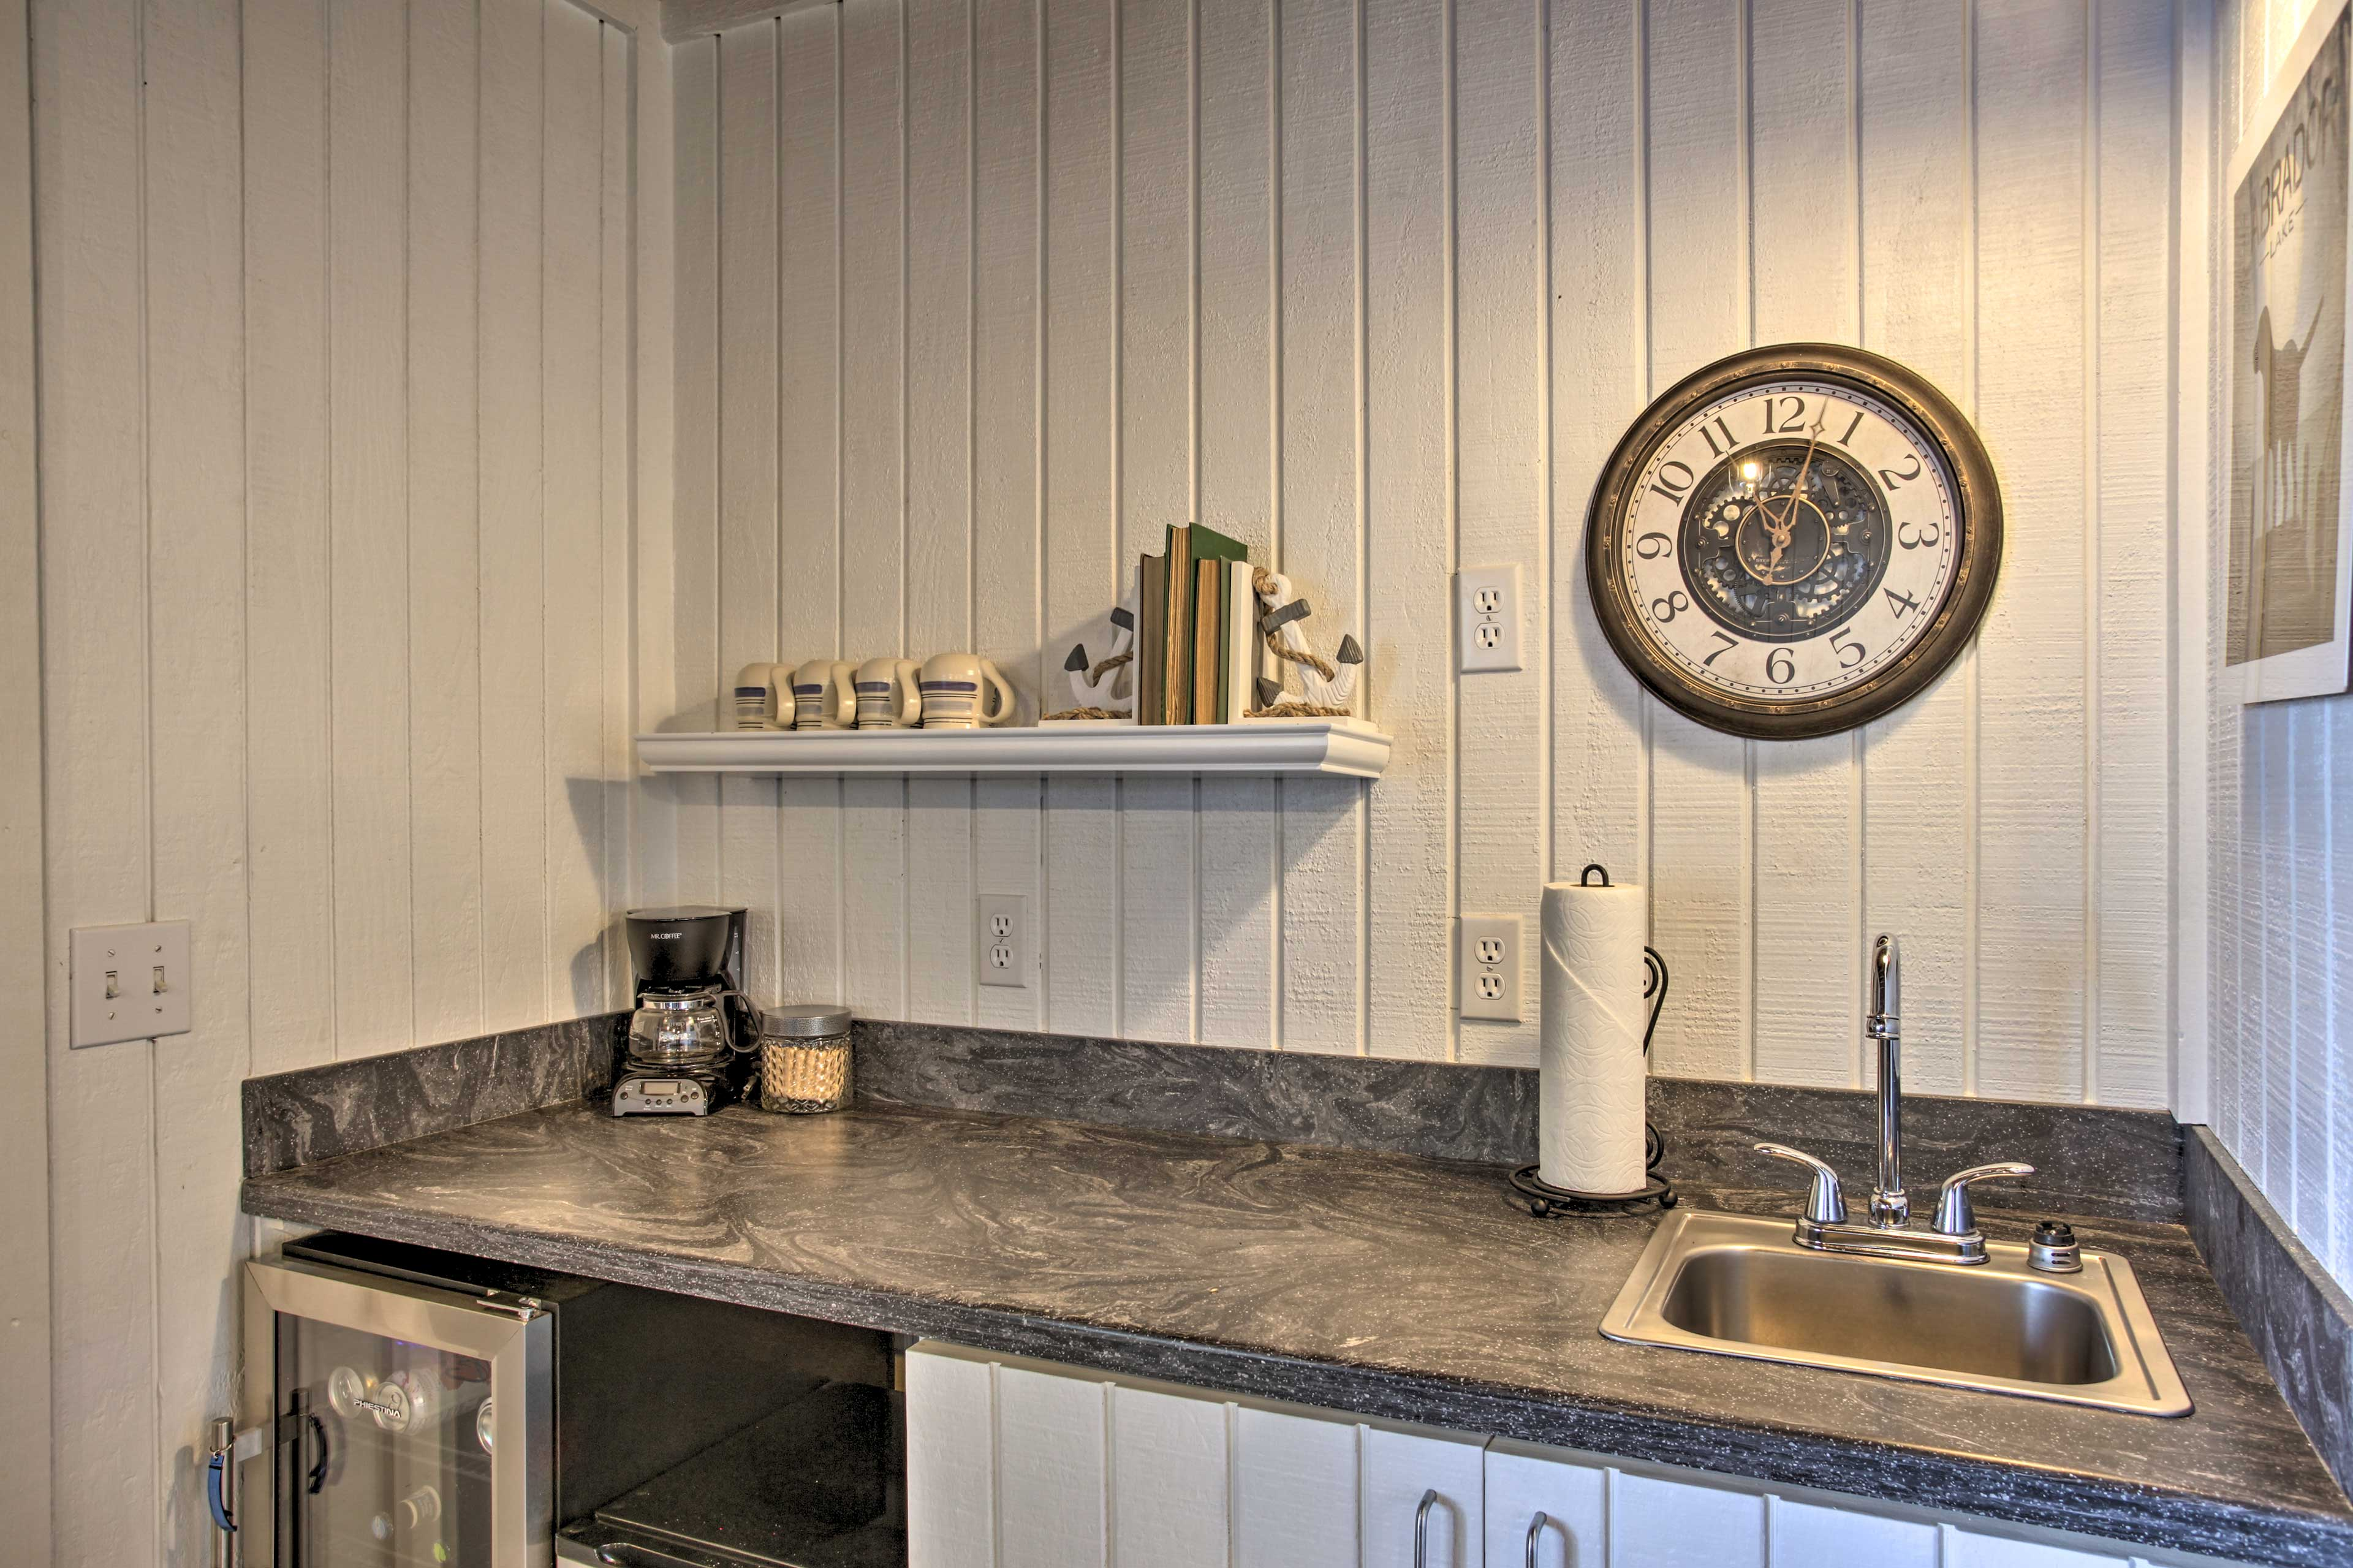 Whip up a round of cocktails at the wet bar!